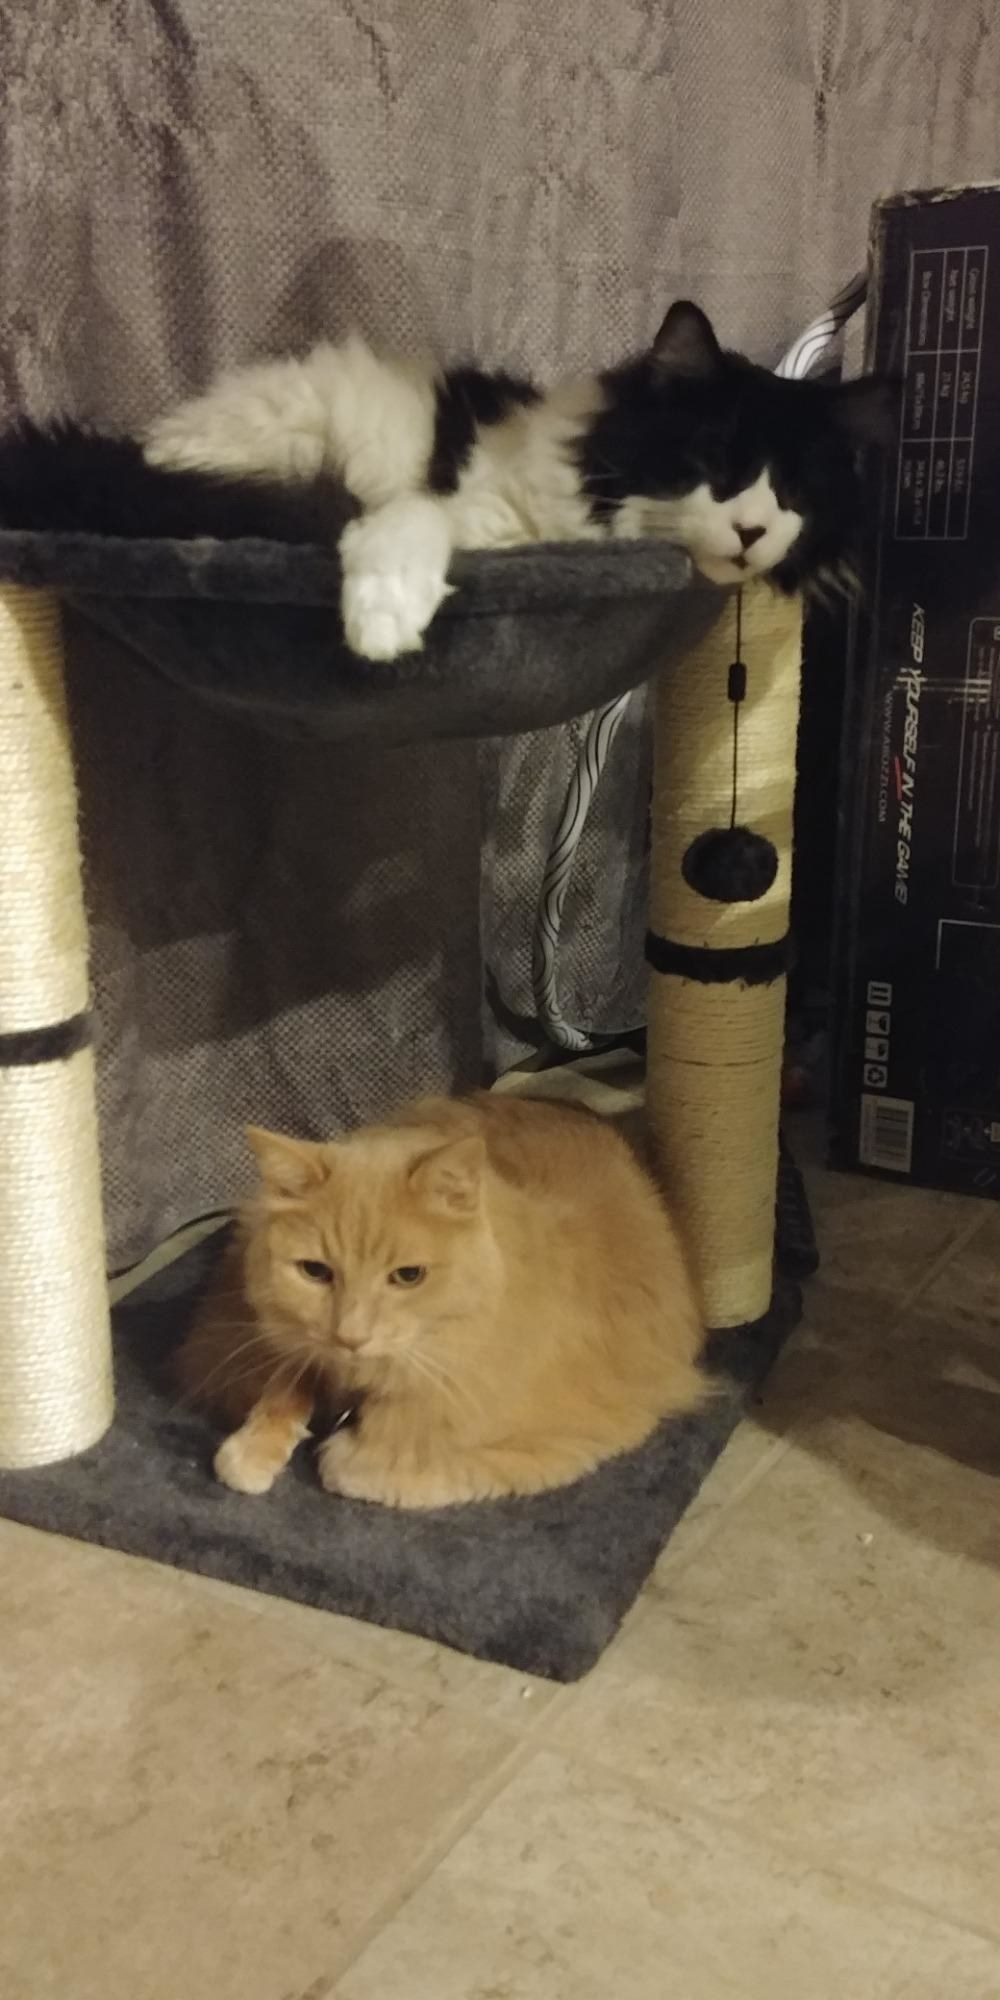 The hammock, which has a carpeted base, two scratching post pillars, and a soft hammock hanging between the top of the two posts